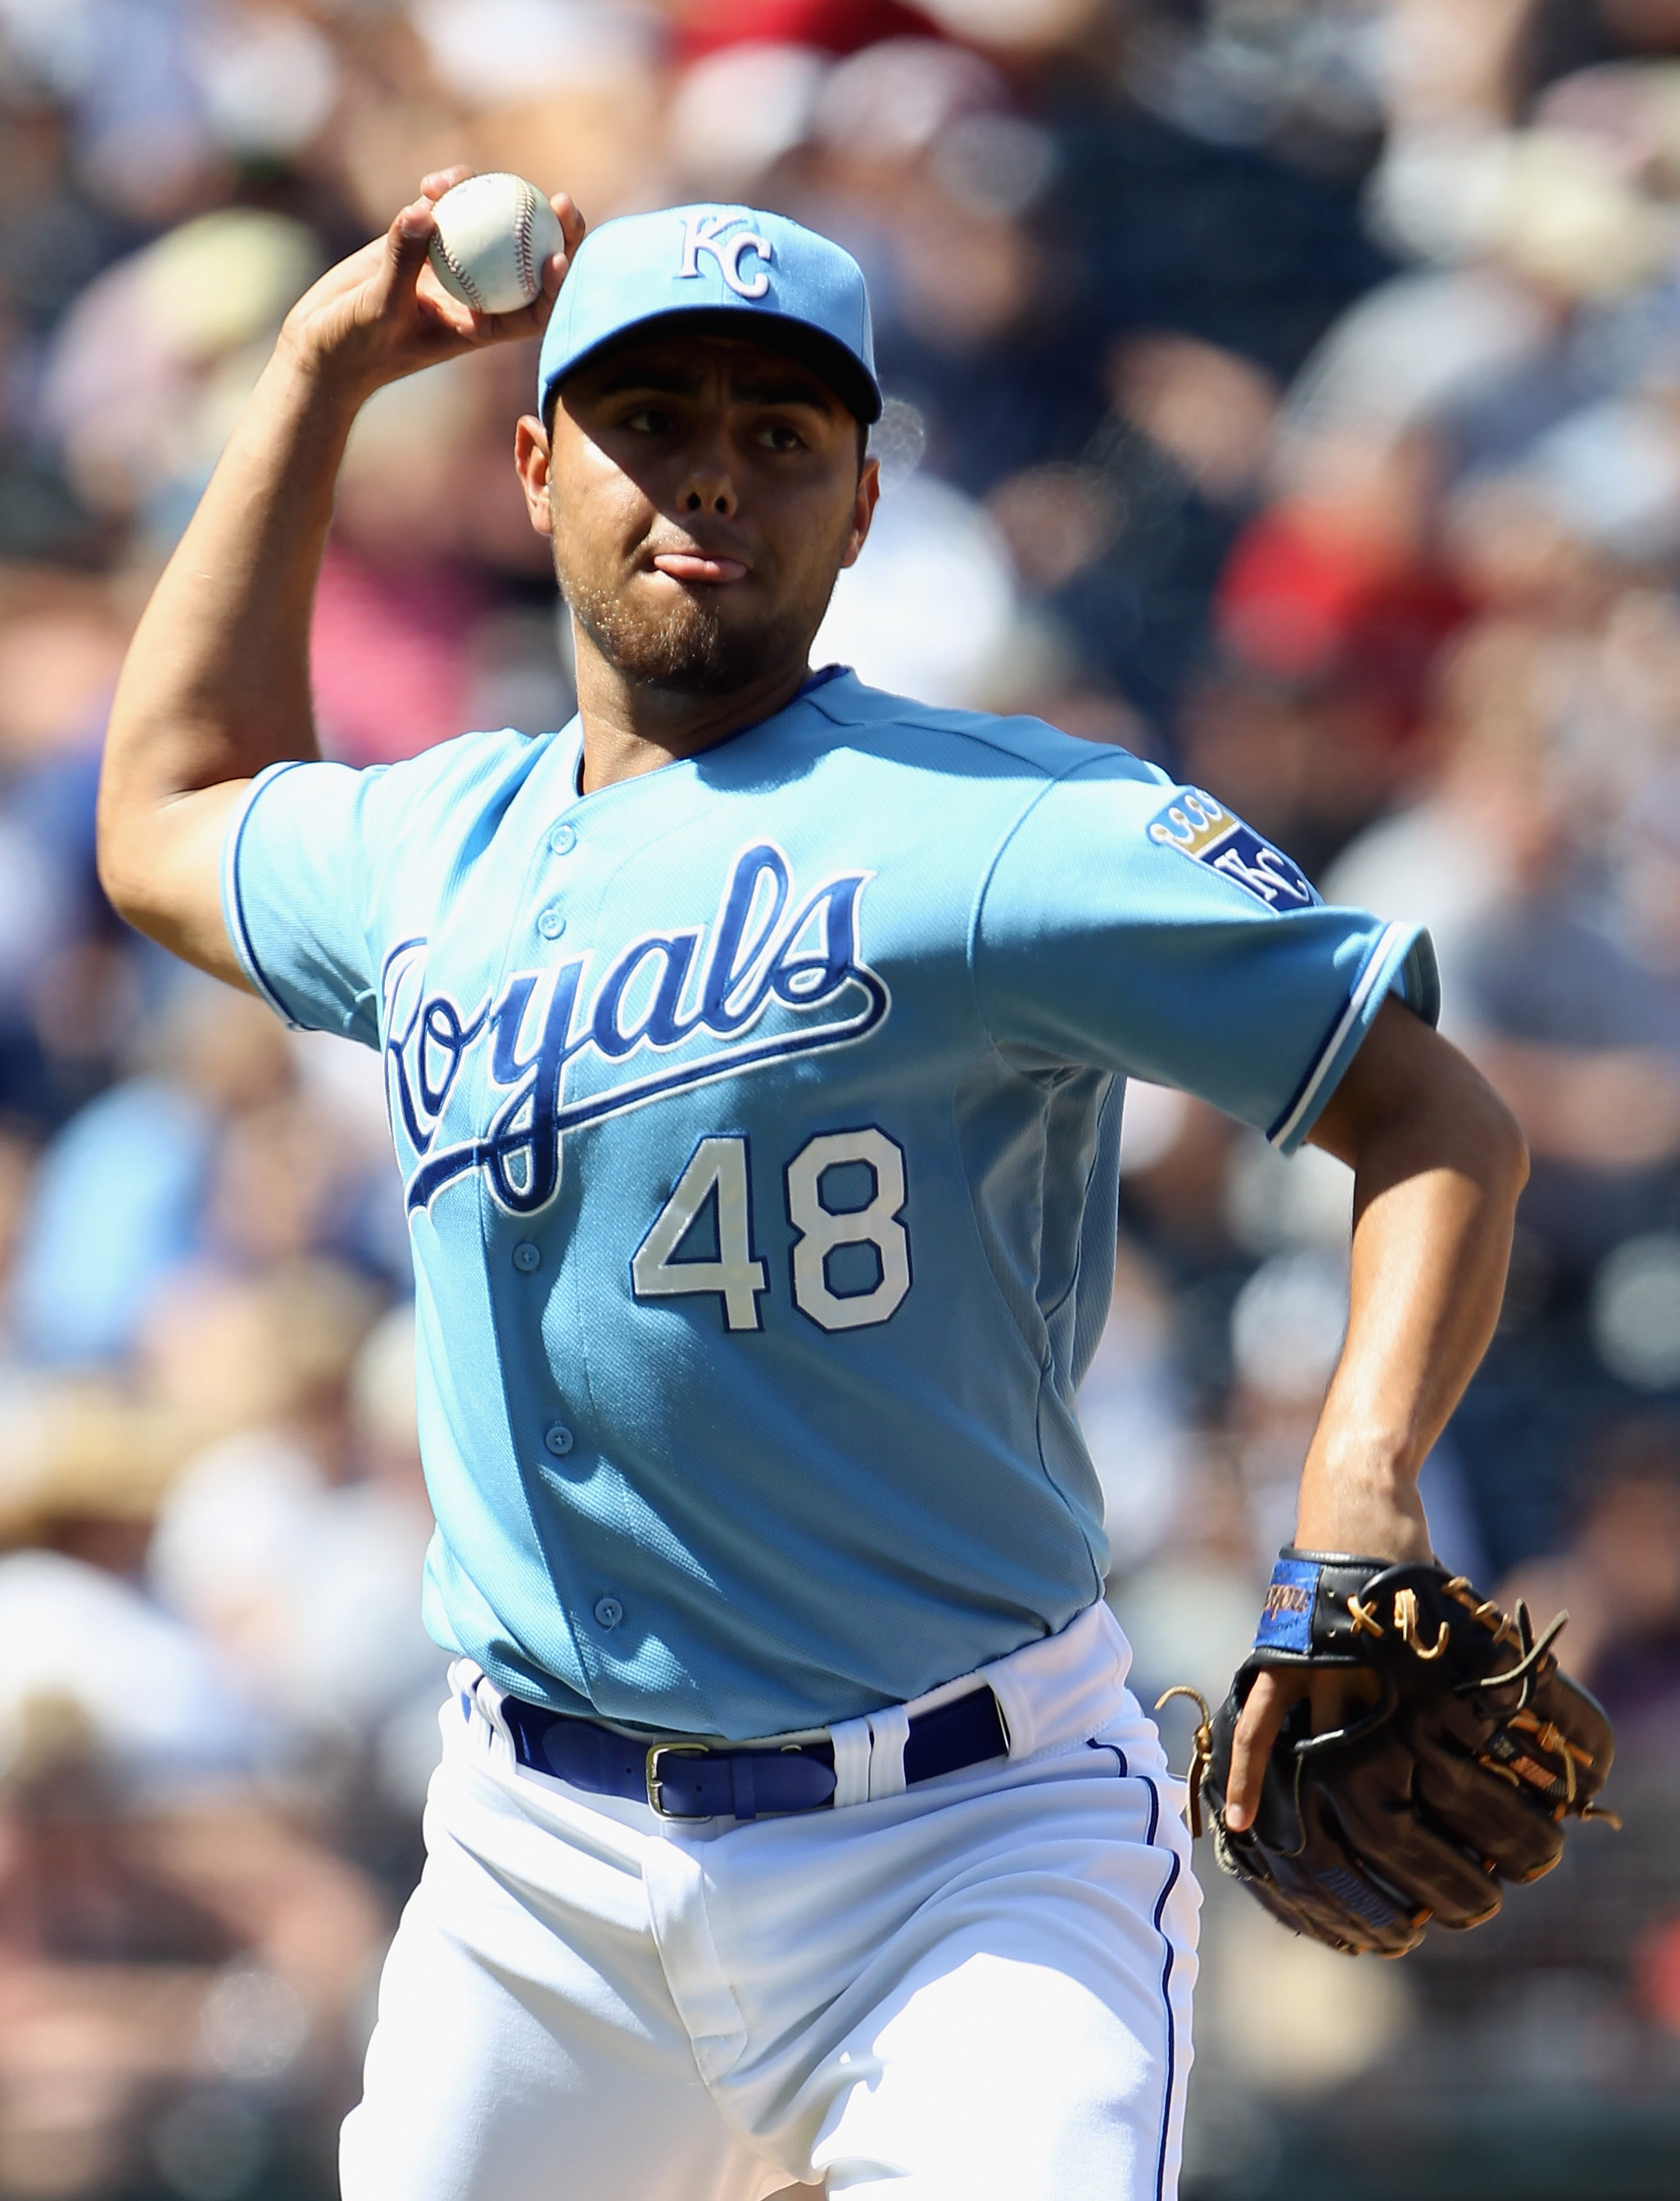 KANSAS CITY, MO - AUGUST 15:  Pitcher Joakim Soria #48 of the Kansas City Royals throws toward first during the game against the New York Yankees on August 15, 2010 at Kauffman stadium in Kansas City, Missouri.  (Photo by Jamie Squire/Getty Images)